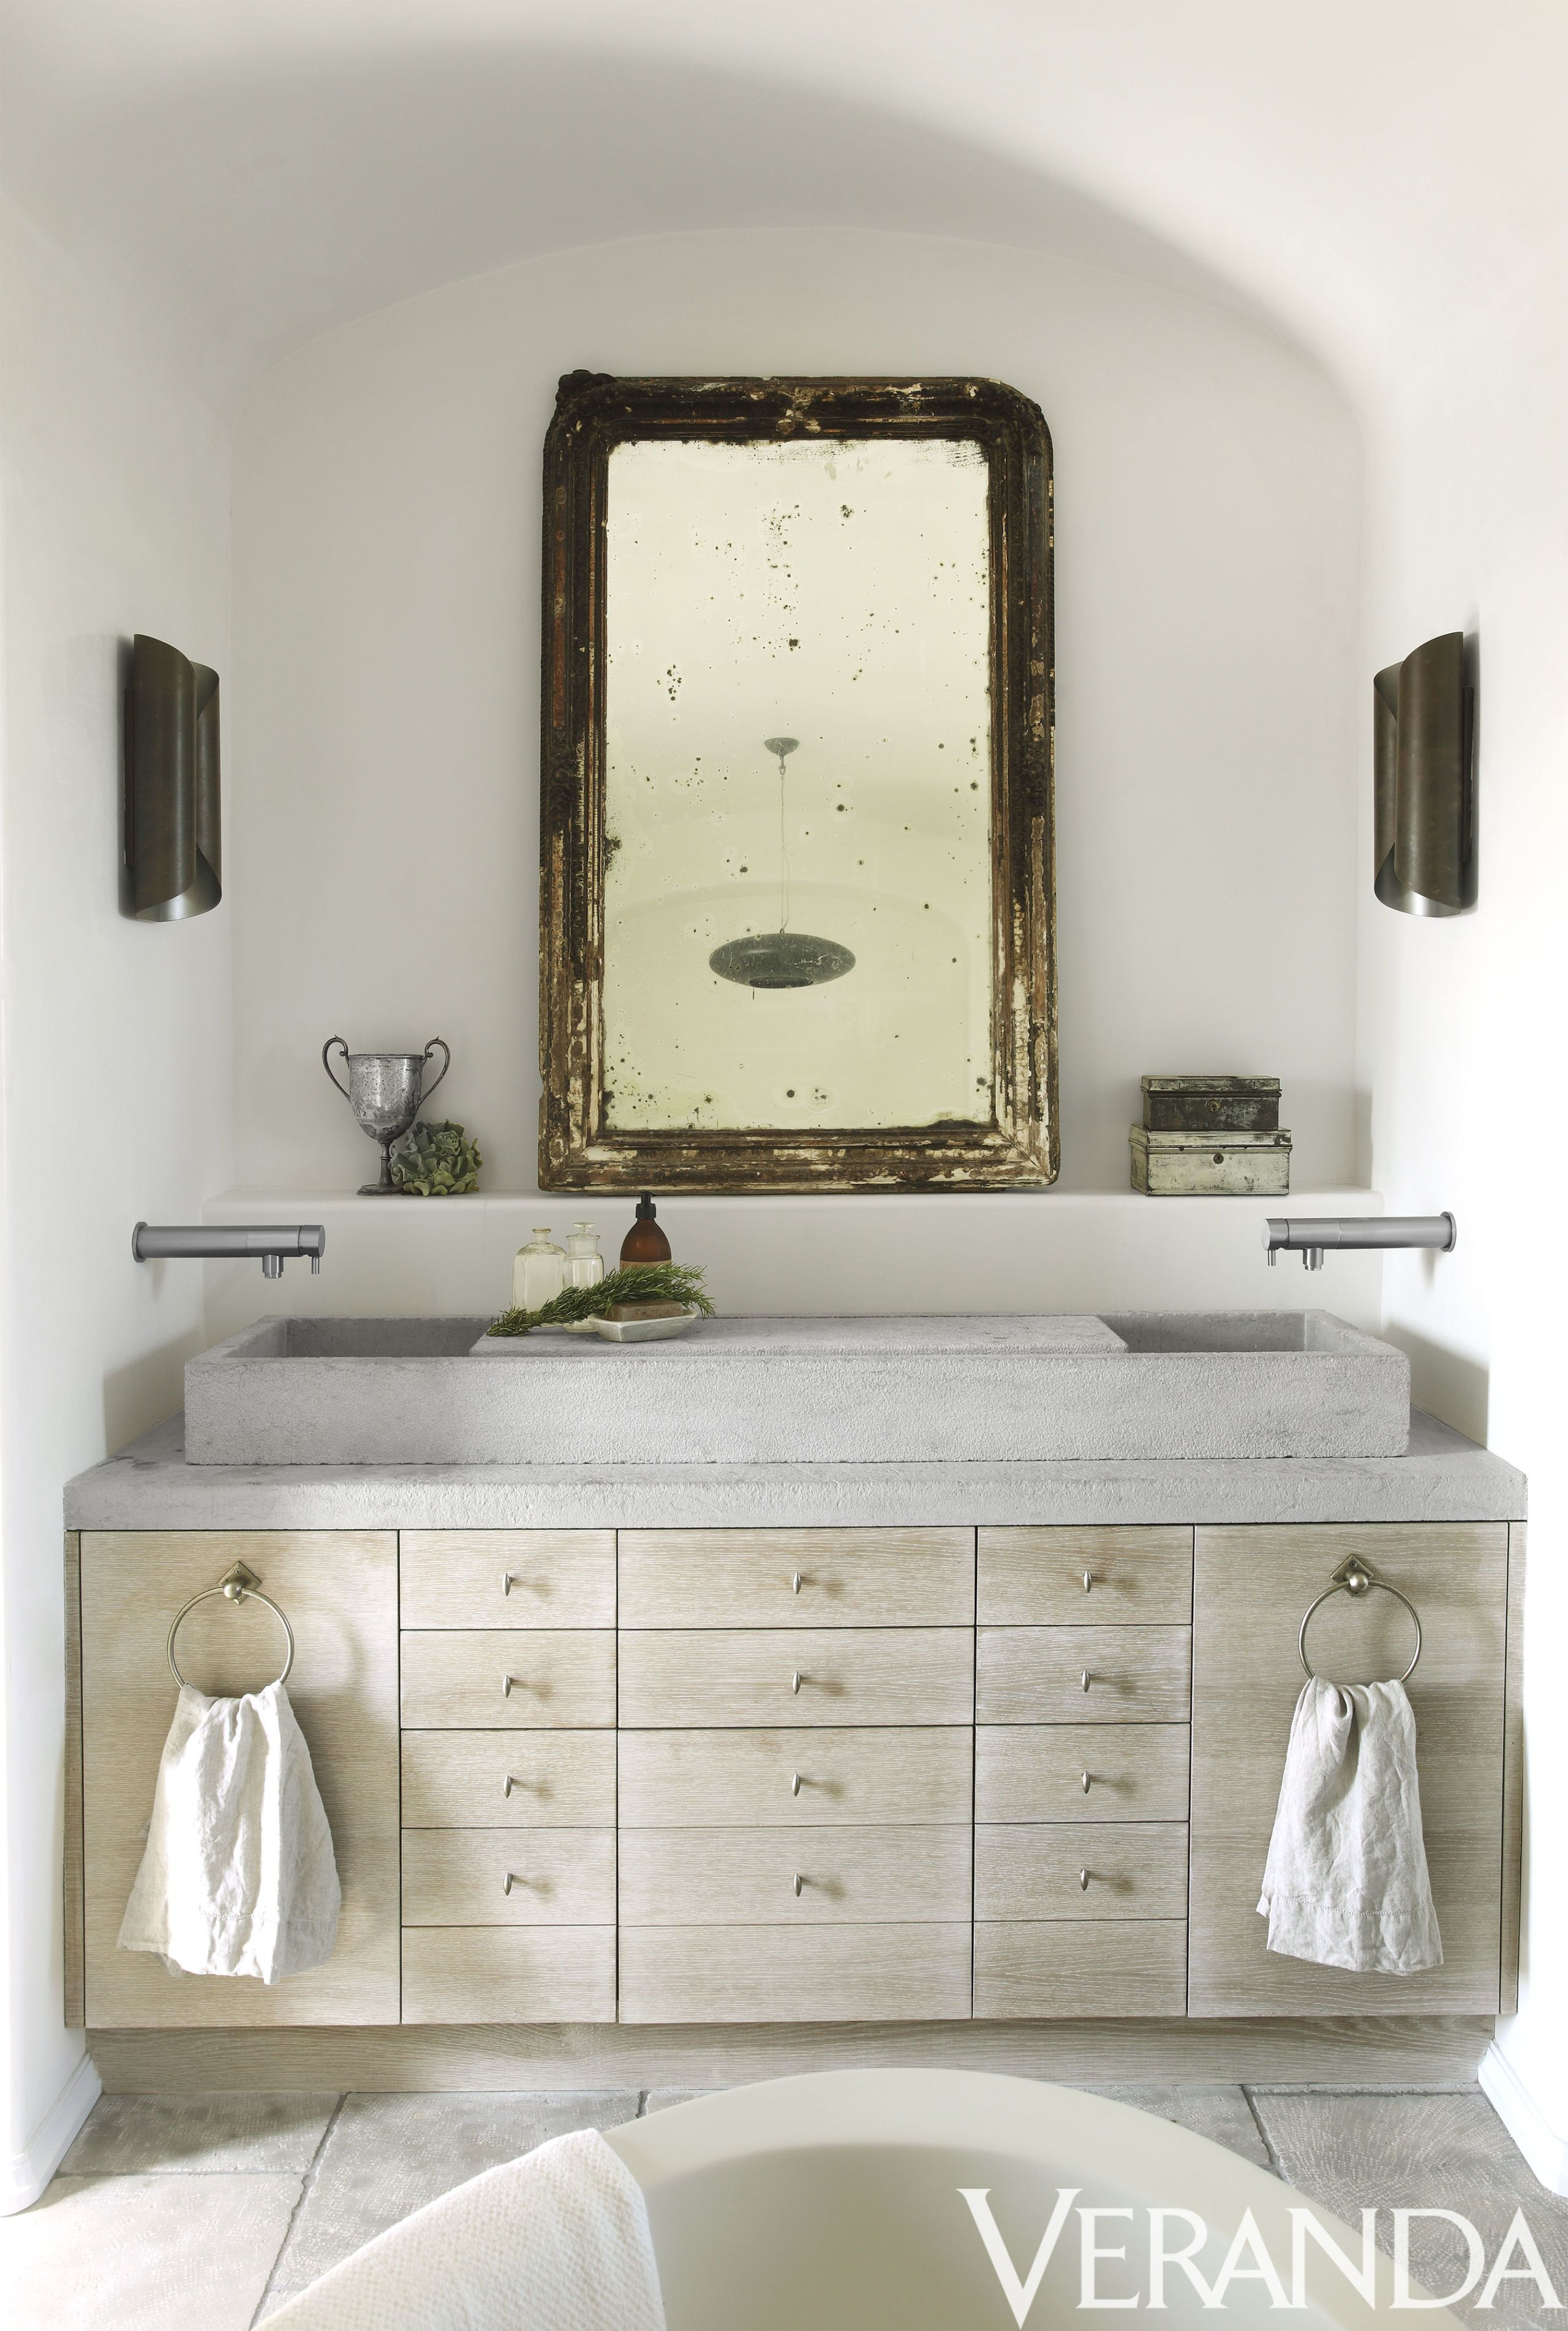 35+ Beautiful Bathroom Decorating Ideas